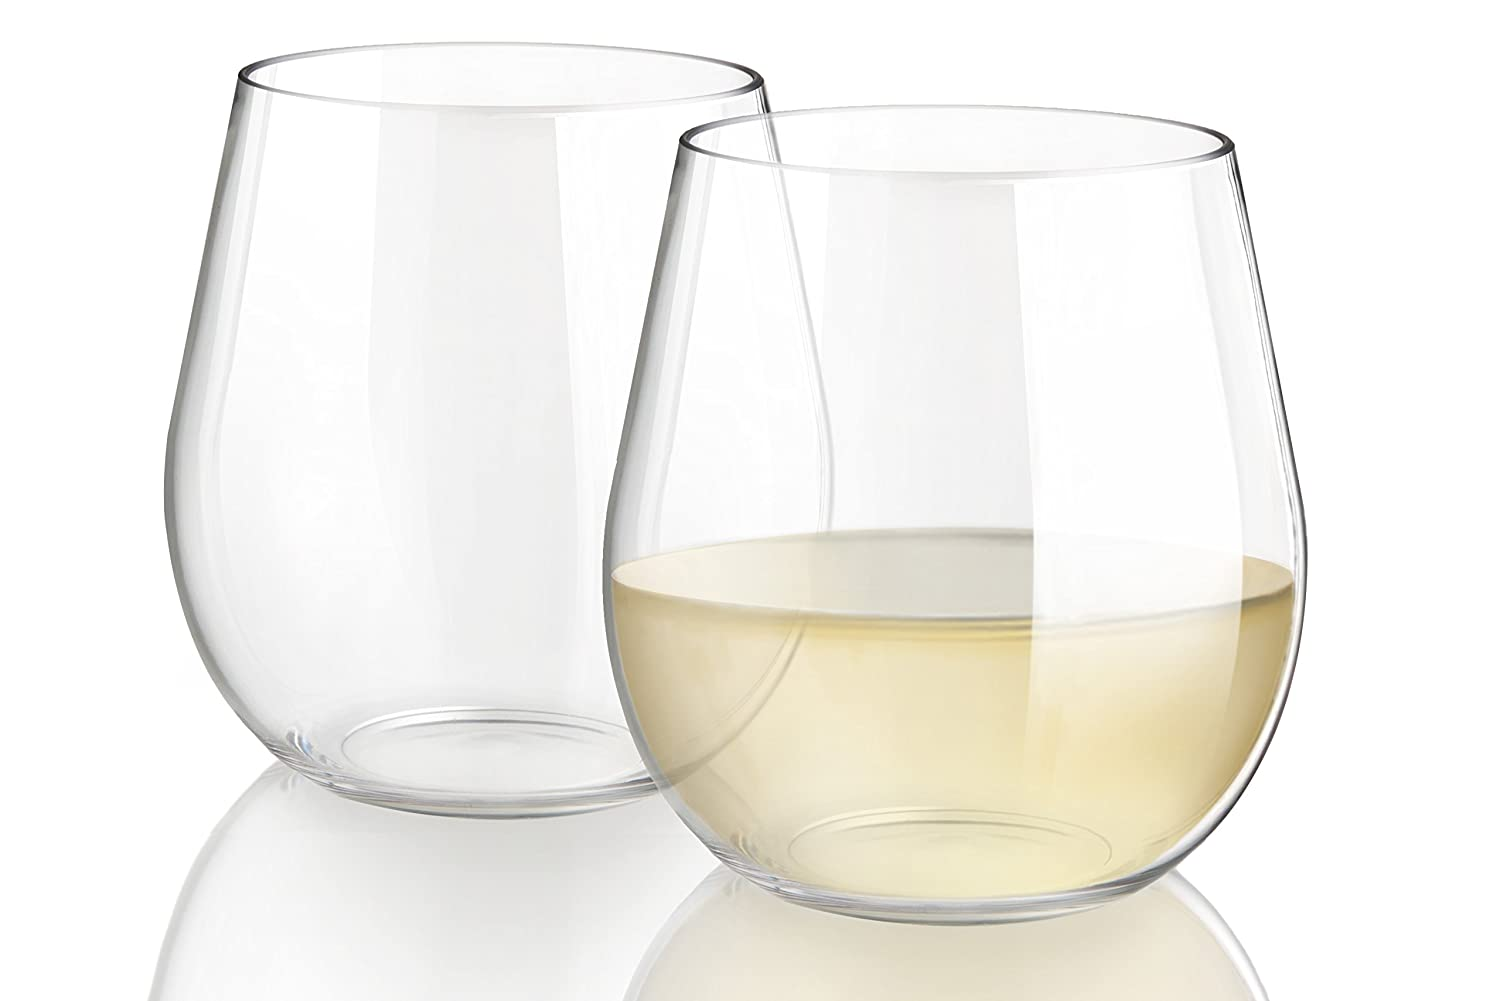 Elegant Unbreakable Stemless Wine Glasses, Dishwasher Safe, 100% Tritan BPA-free Plastic, Won't Cloud or Stain, 20 Ounces Each, Heavy Base Won't Tip, Set of 4, Indoor or Outdoor, Great Hostess Wedding